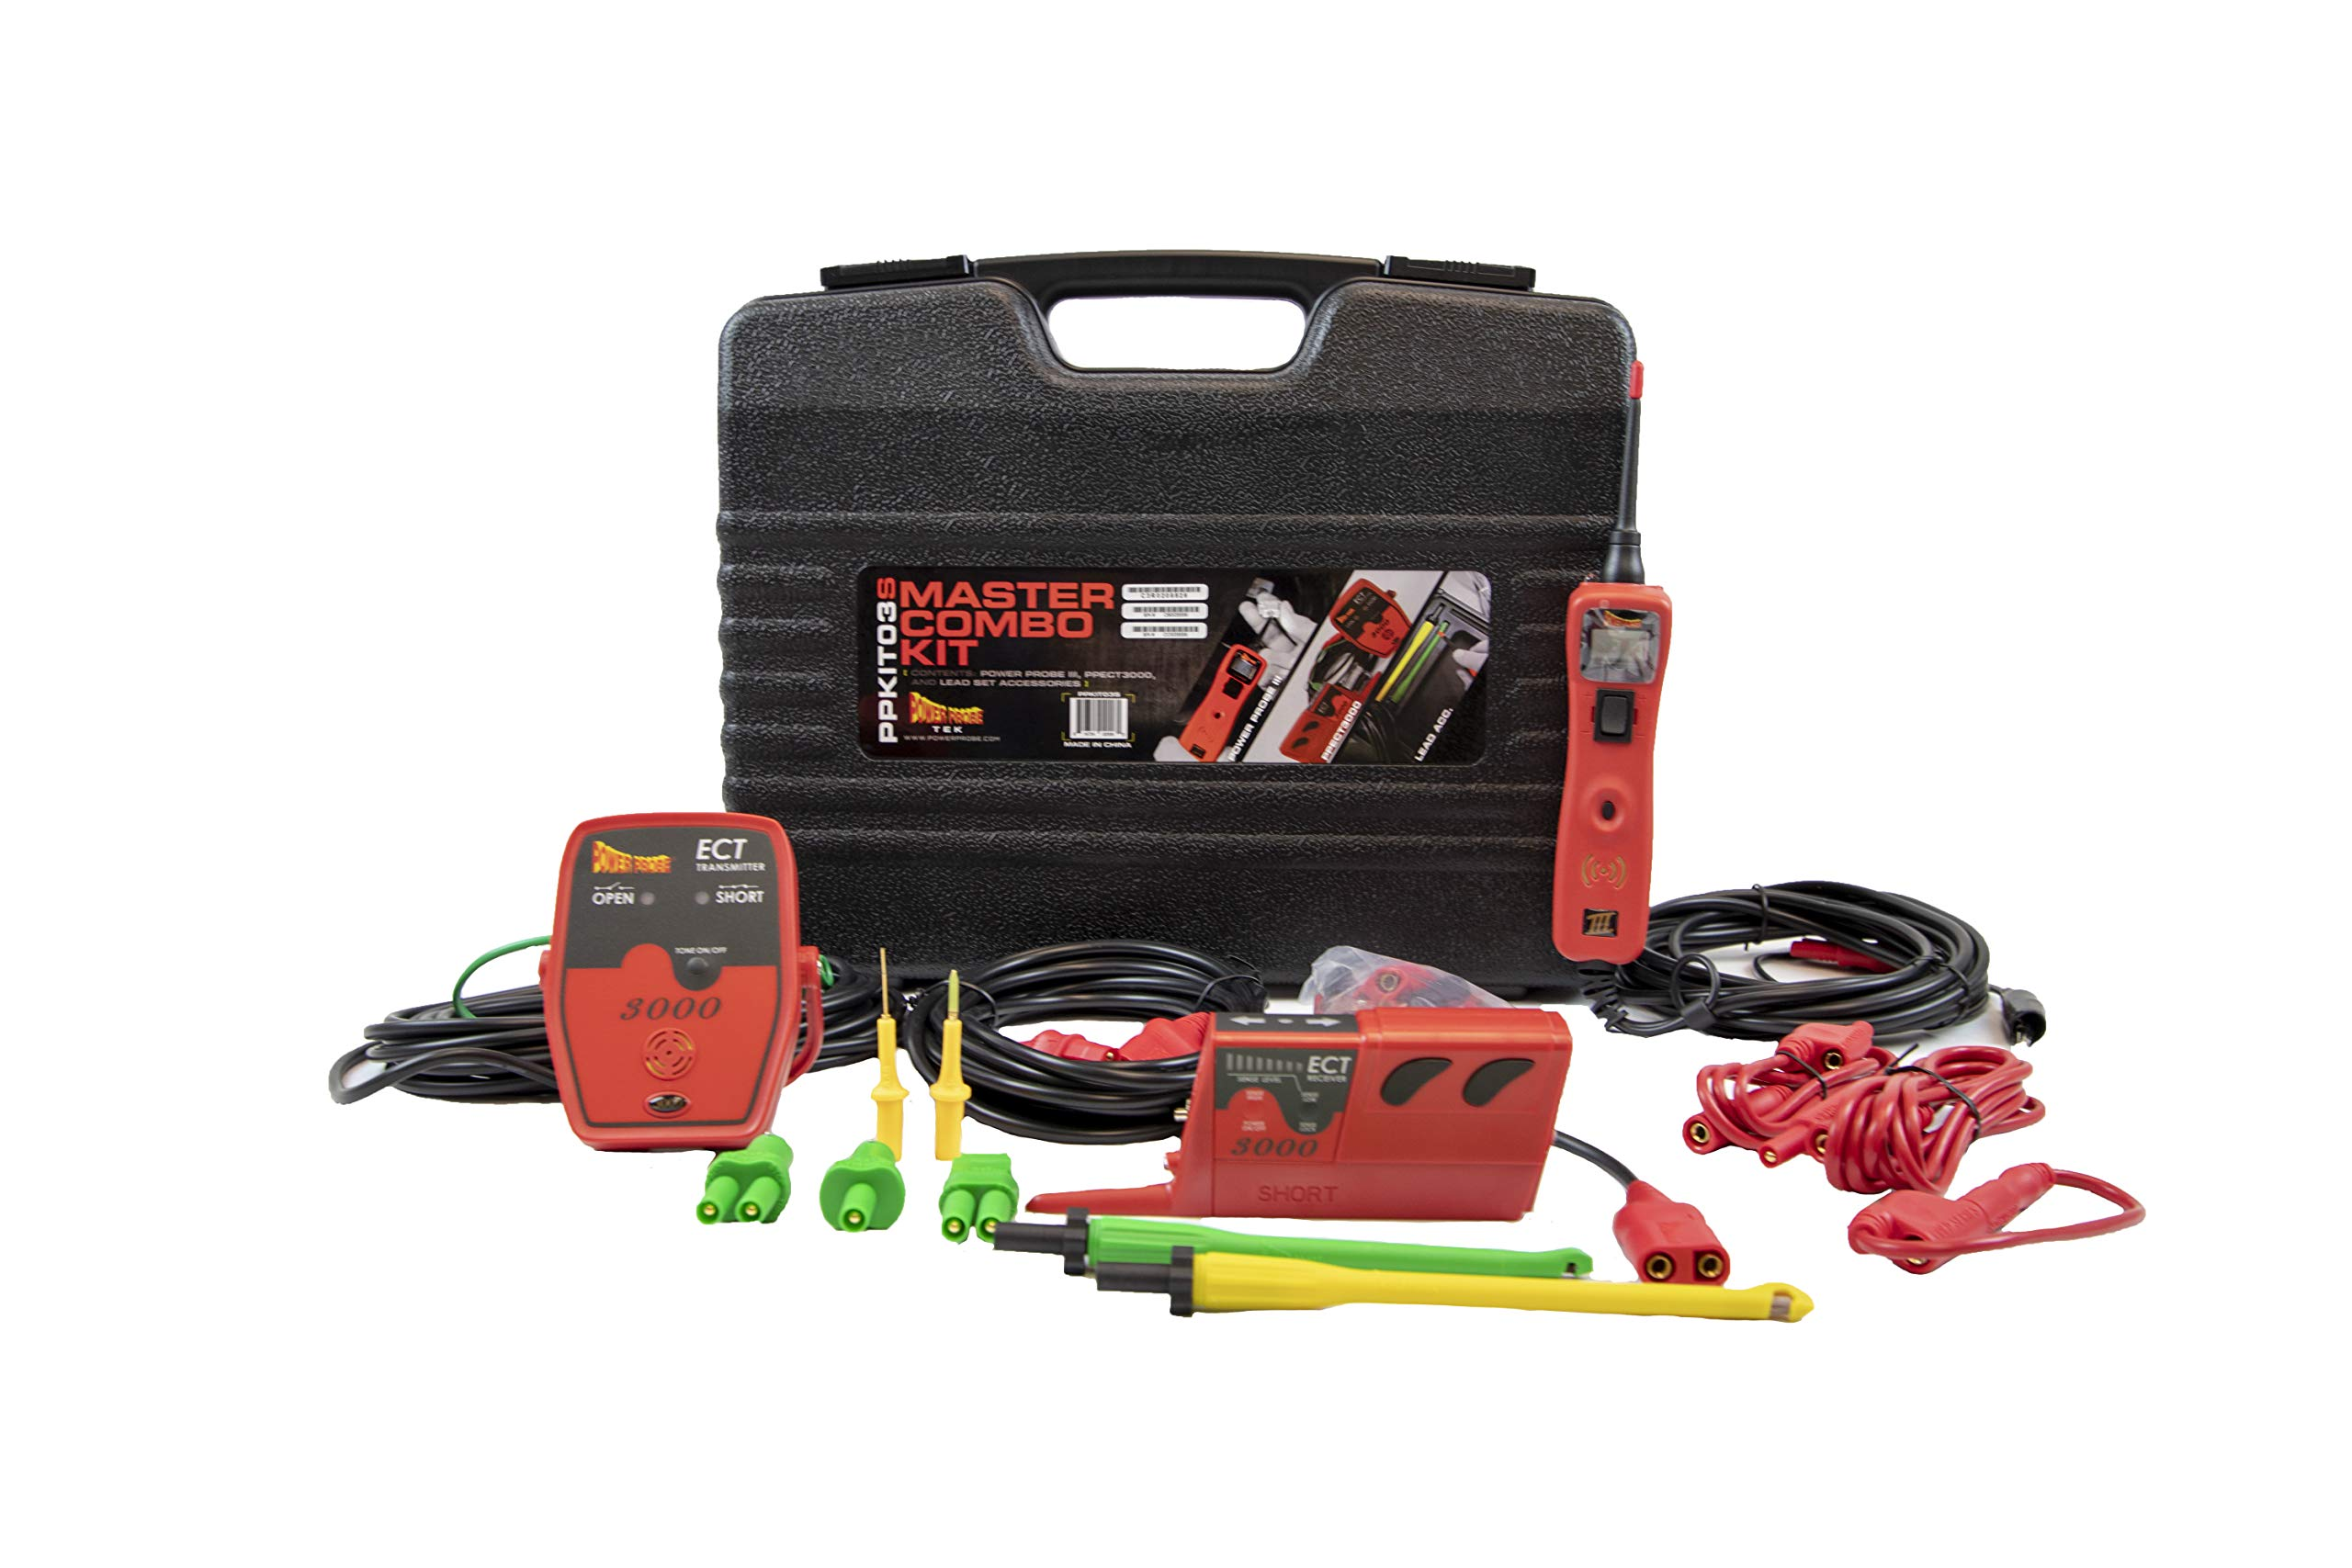 Diesel Laptops Power Probe 3 (III) Master Combo Kit with 12-Months of Truck Fault Codes by Diesel Laptops (Image #8)